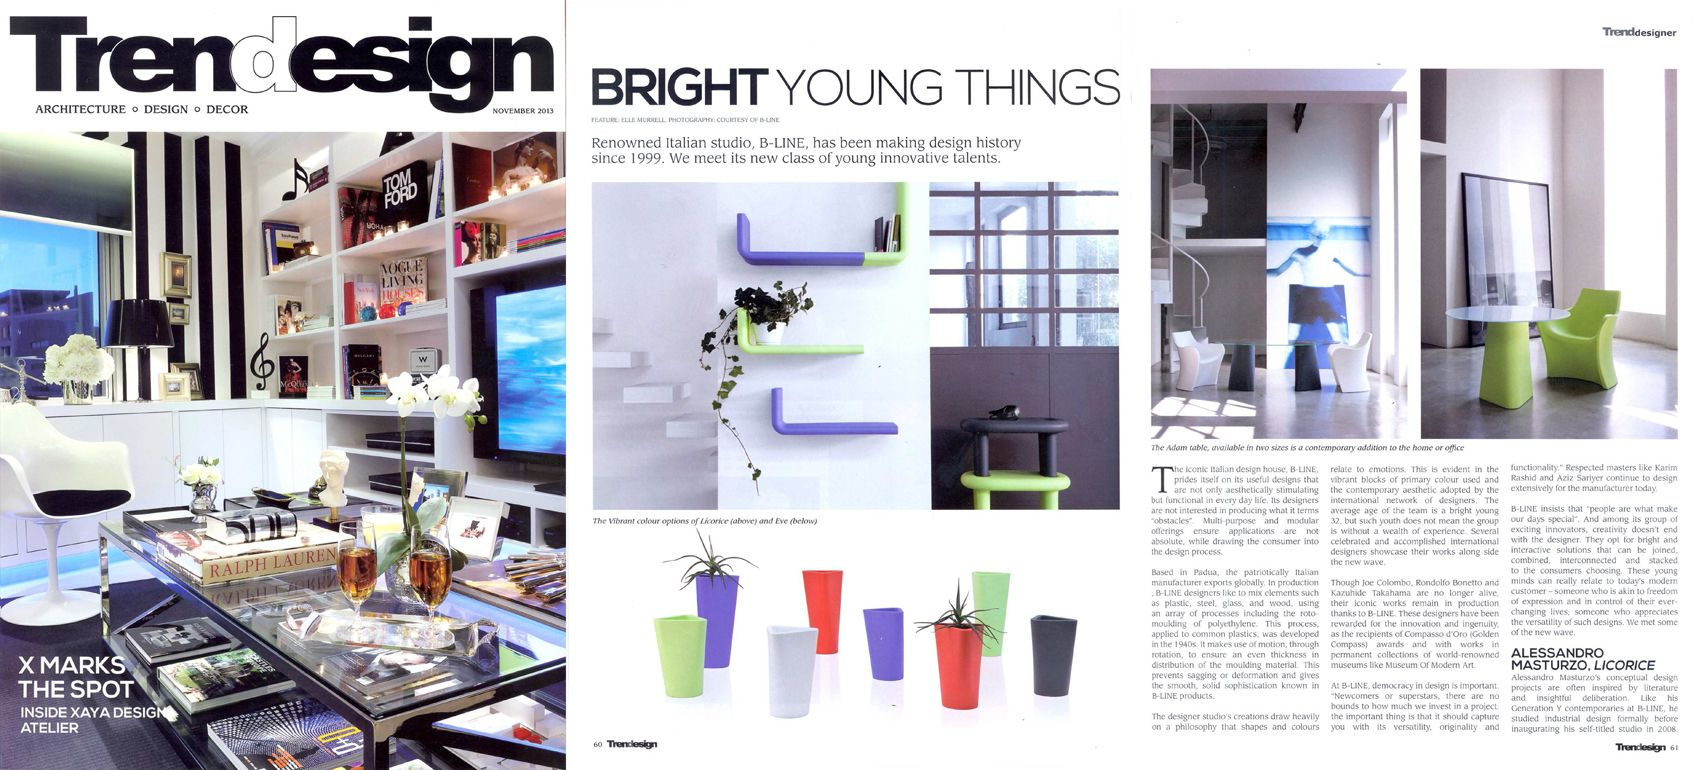 TRENDESIGN, architecture and decor magazine from Jordan speaks of us in November 2013 issue.